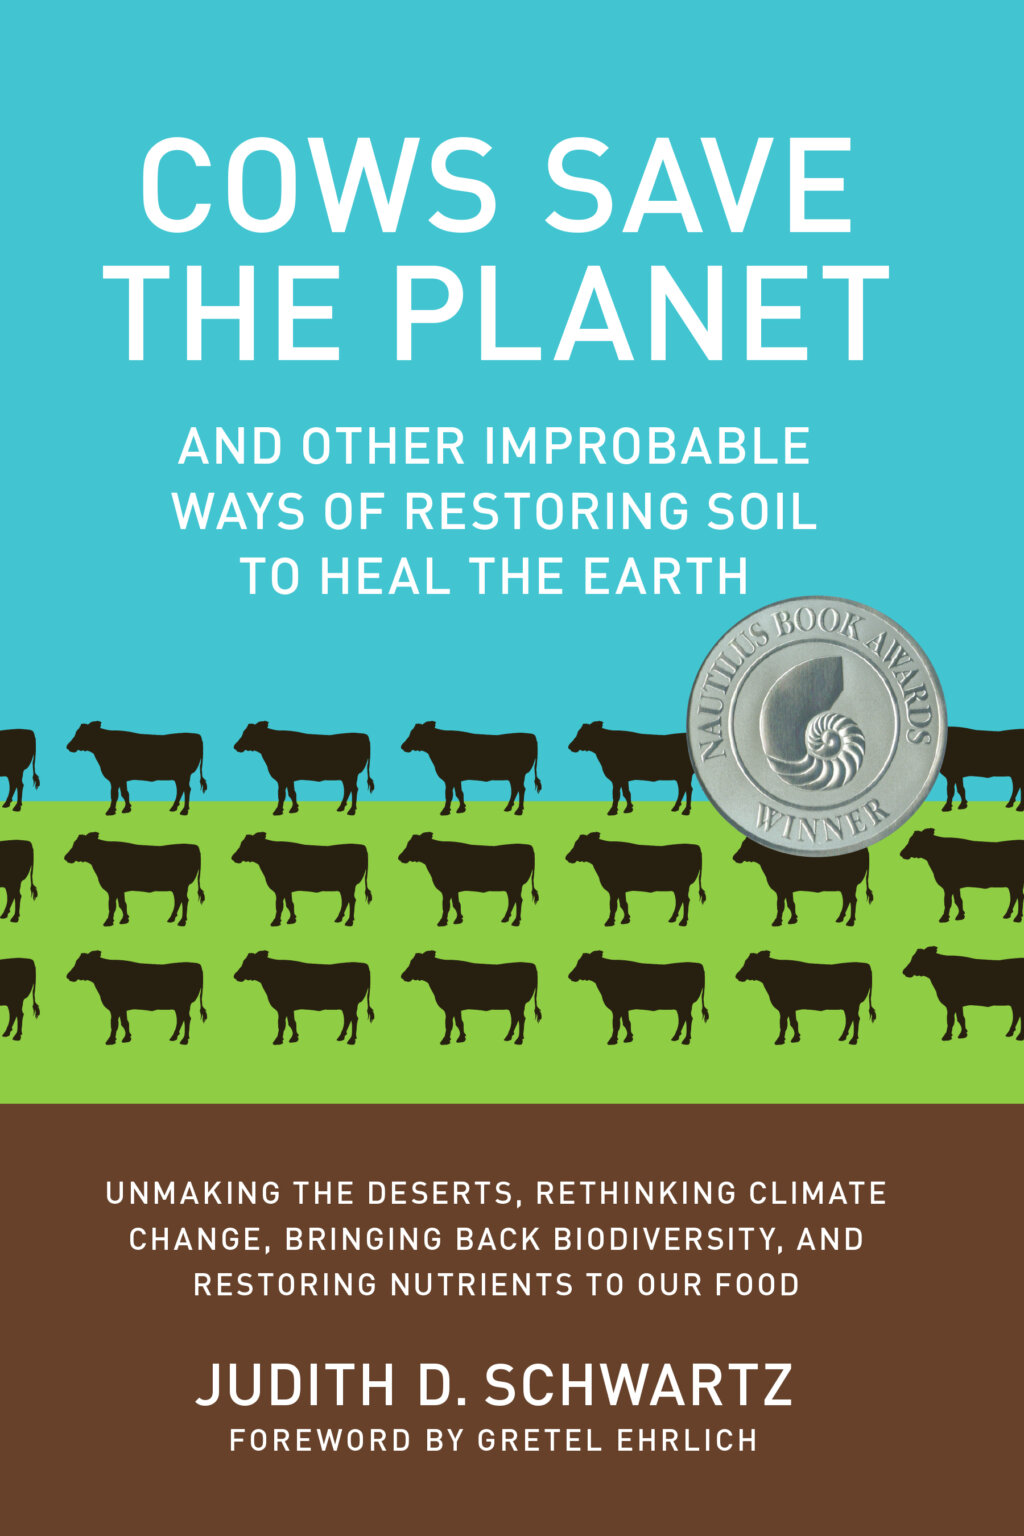 The Cows Save the Planet cover